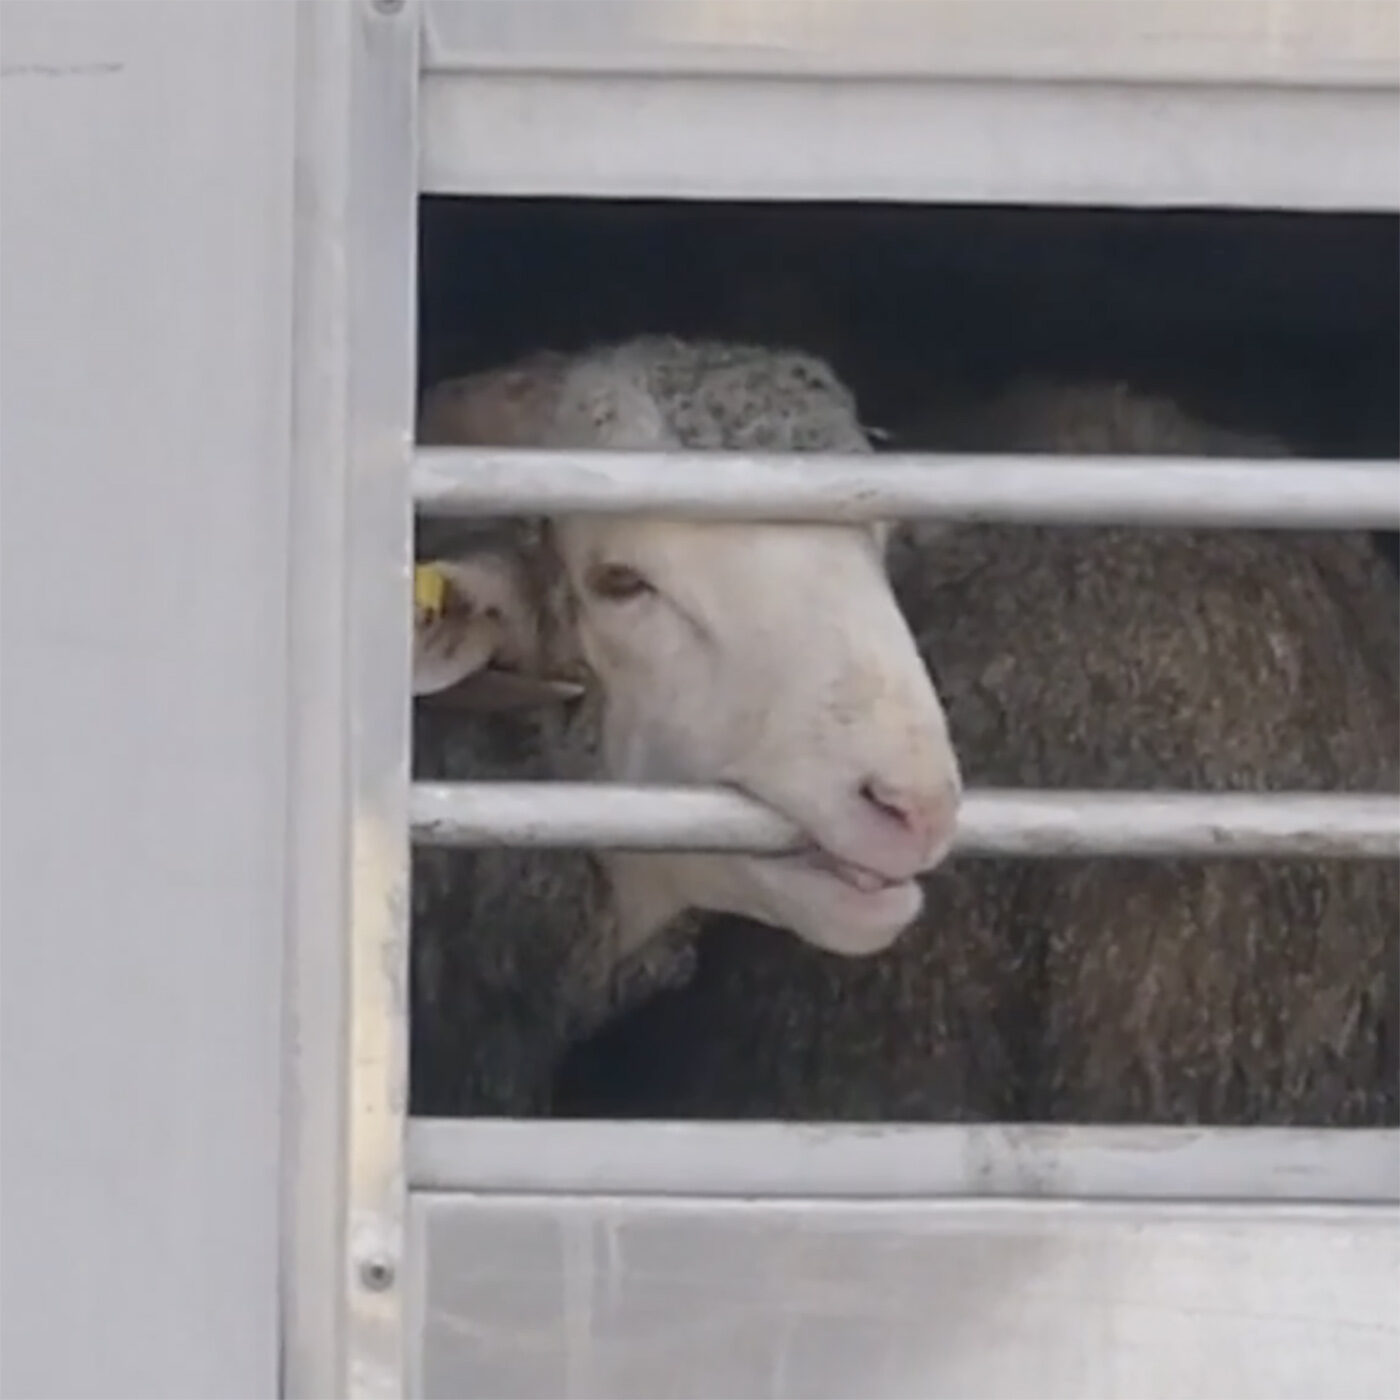 In Collaboration, Animal Equality and Others Expose Cruelty of Spanish Animal Export